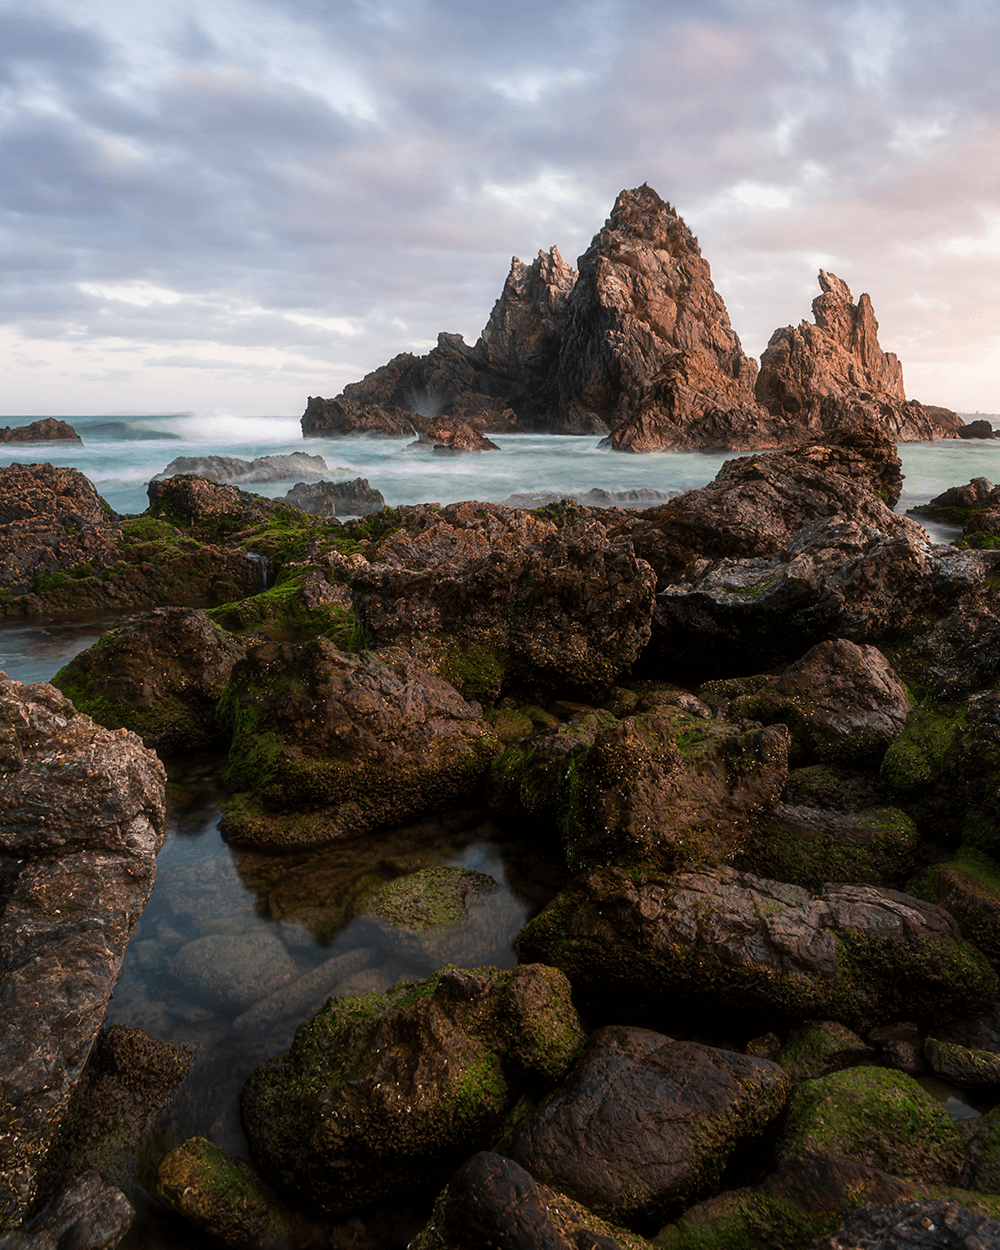 Image of rugged Australian coastlines by @omorfiphotography